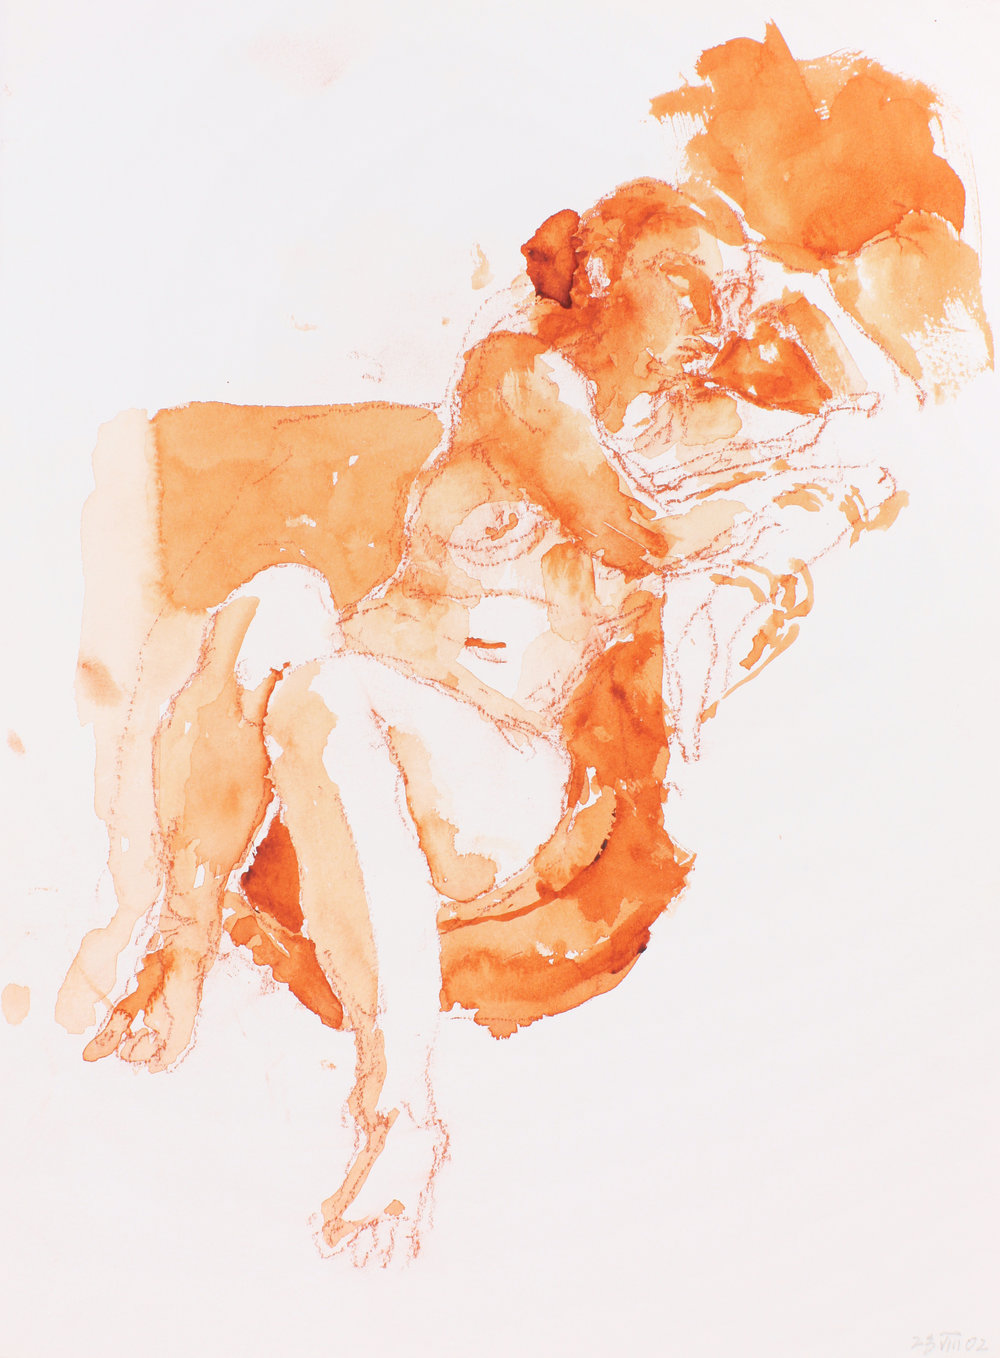 2002_Nude_Seated_on_Sofa_with_Right_Arm_at_Head_Facing_Right_watercolour_and_red_conté_on_paper_15x11in_WPF214.jpg